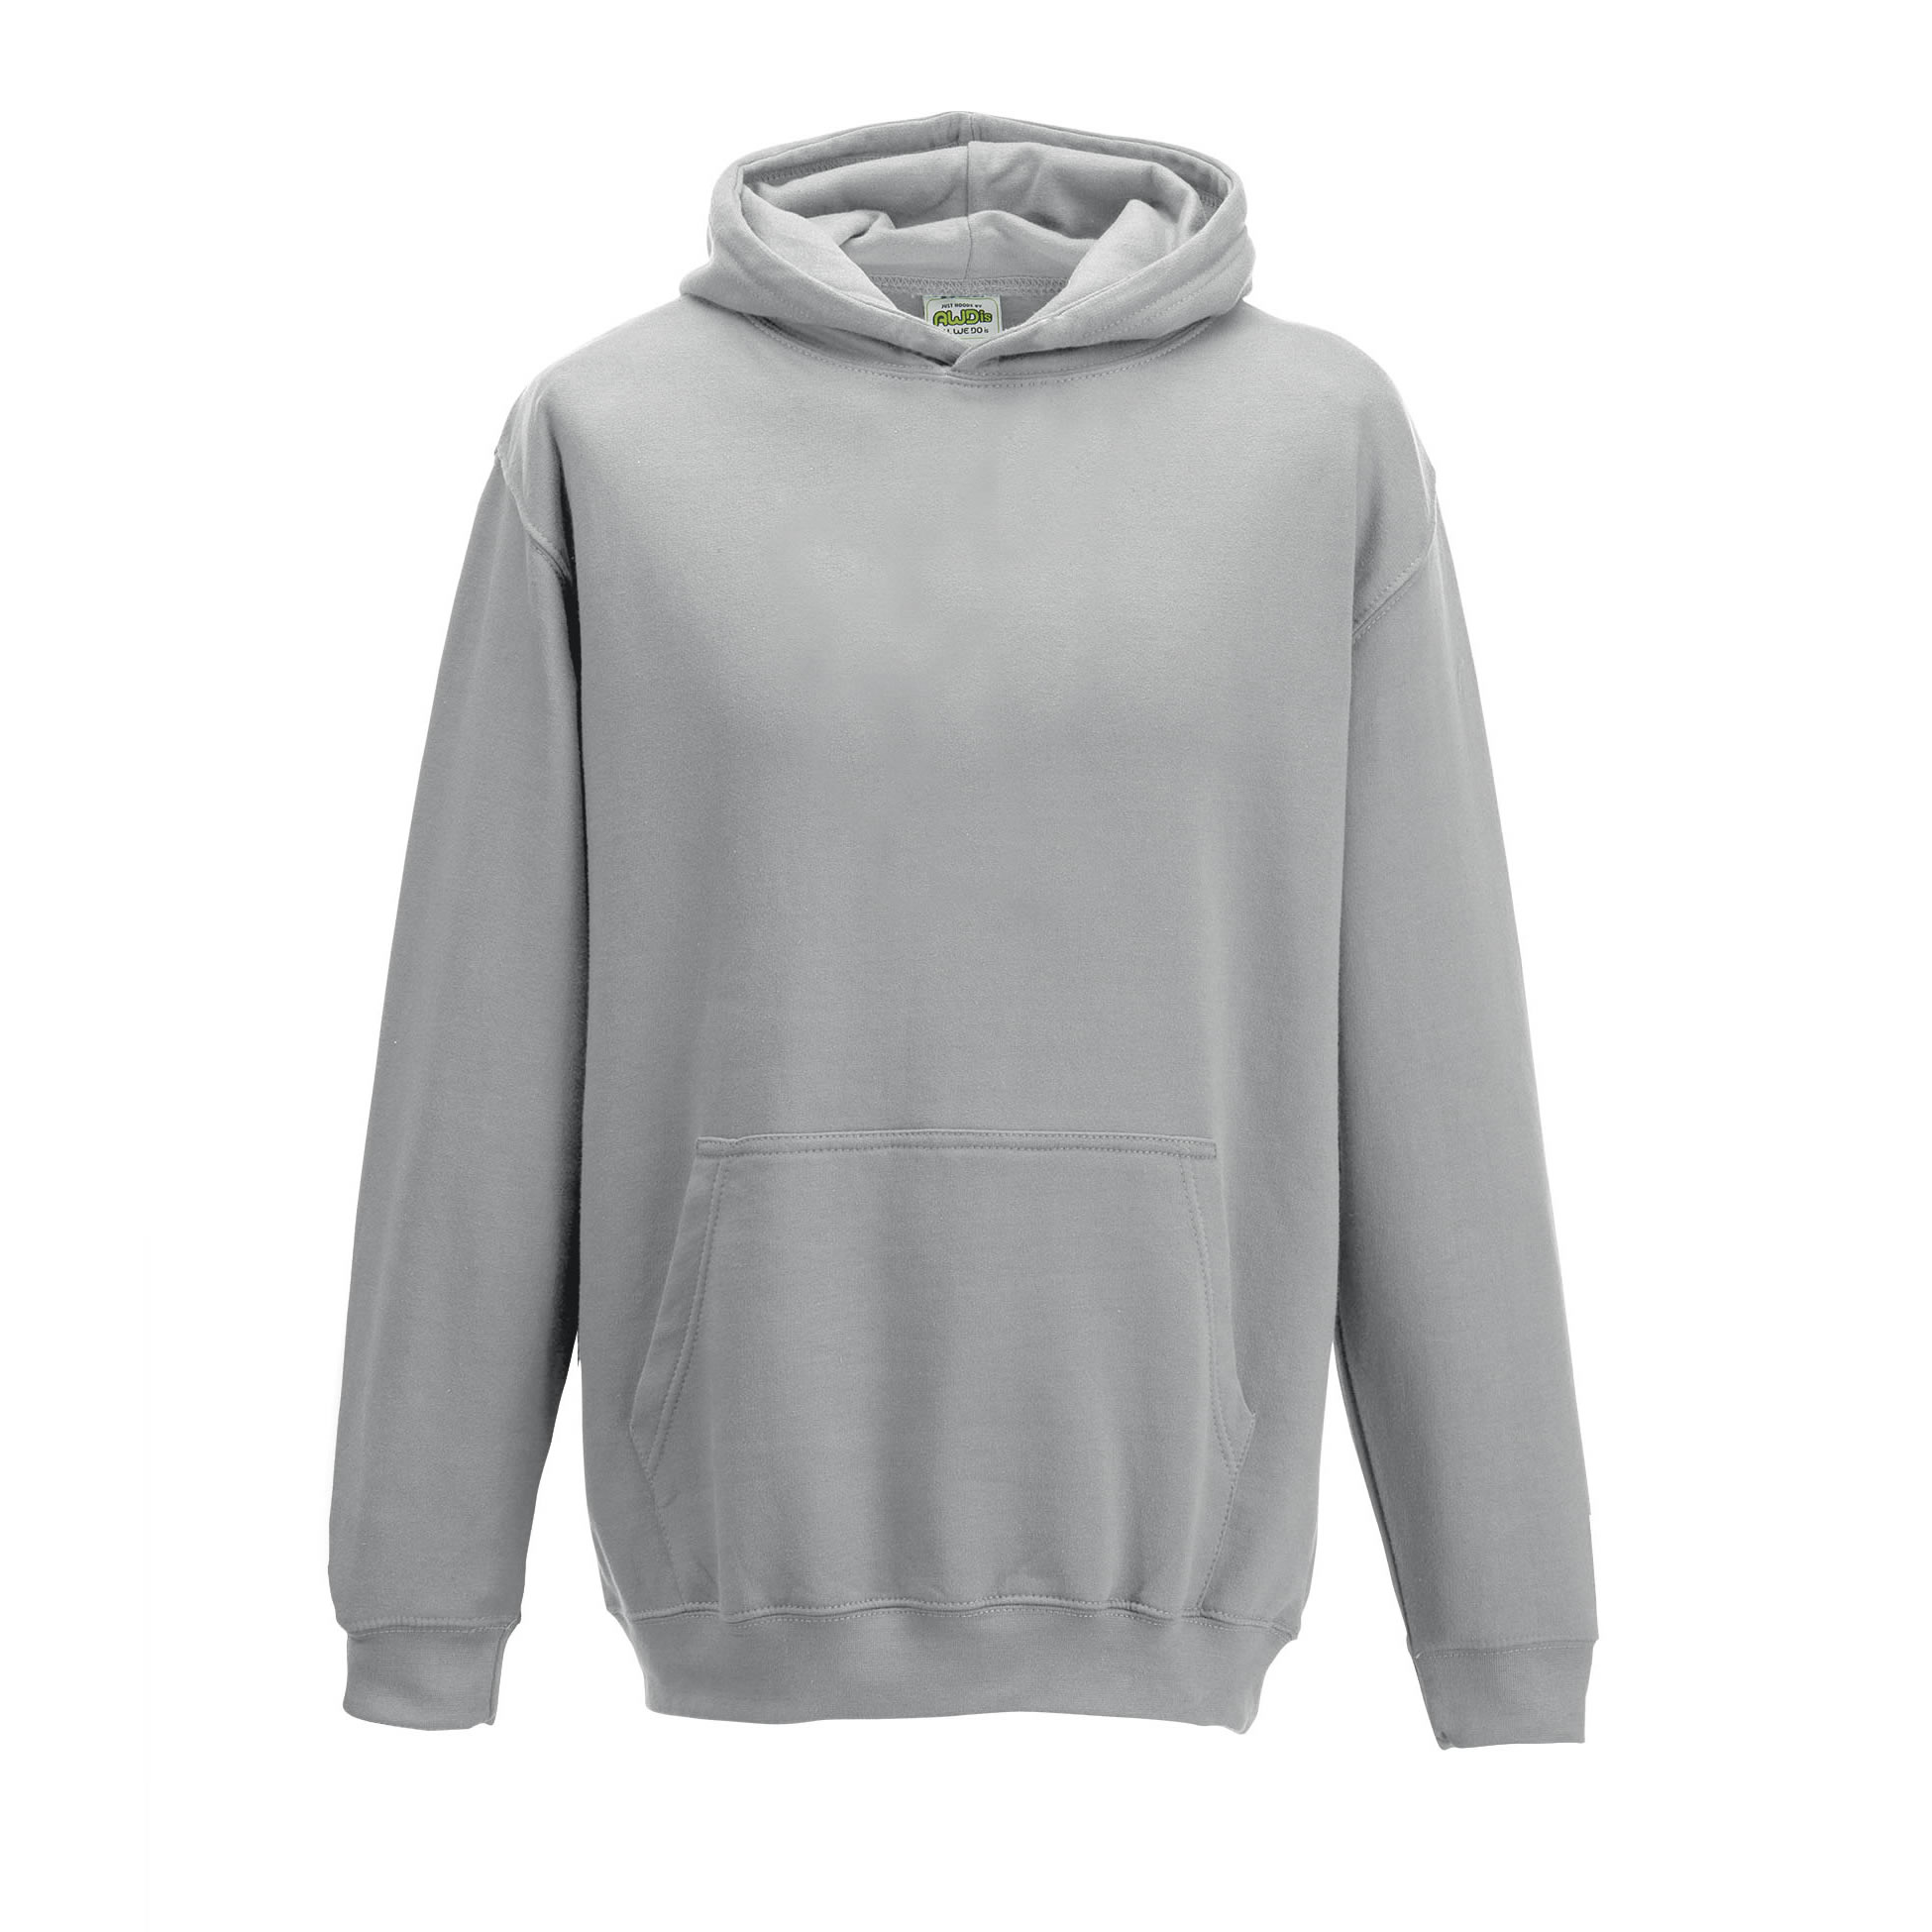 Lasten huppari Heather Grey